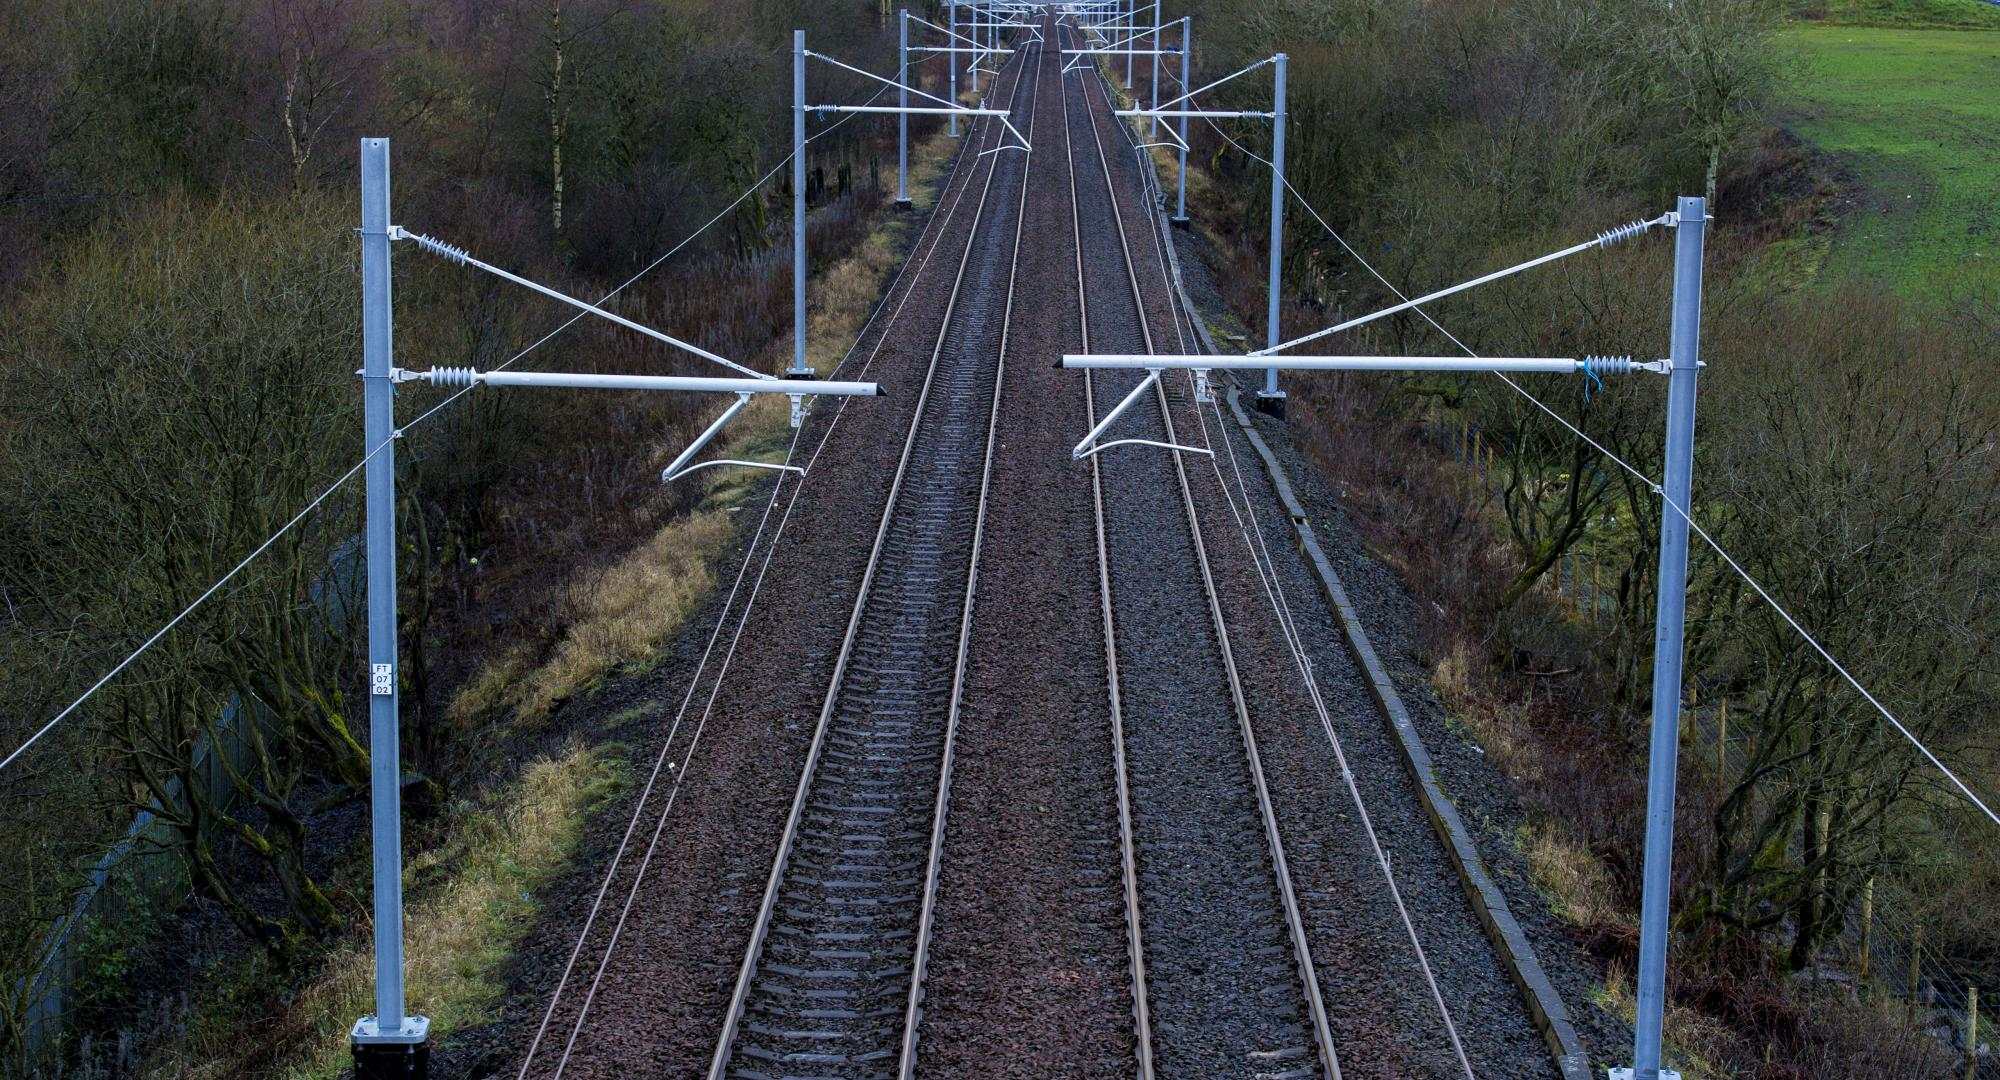 Electrified overhead lines (via Network Rail image library)